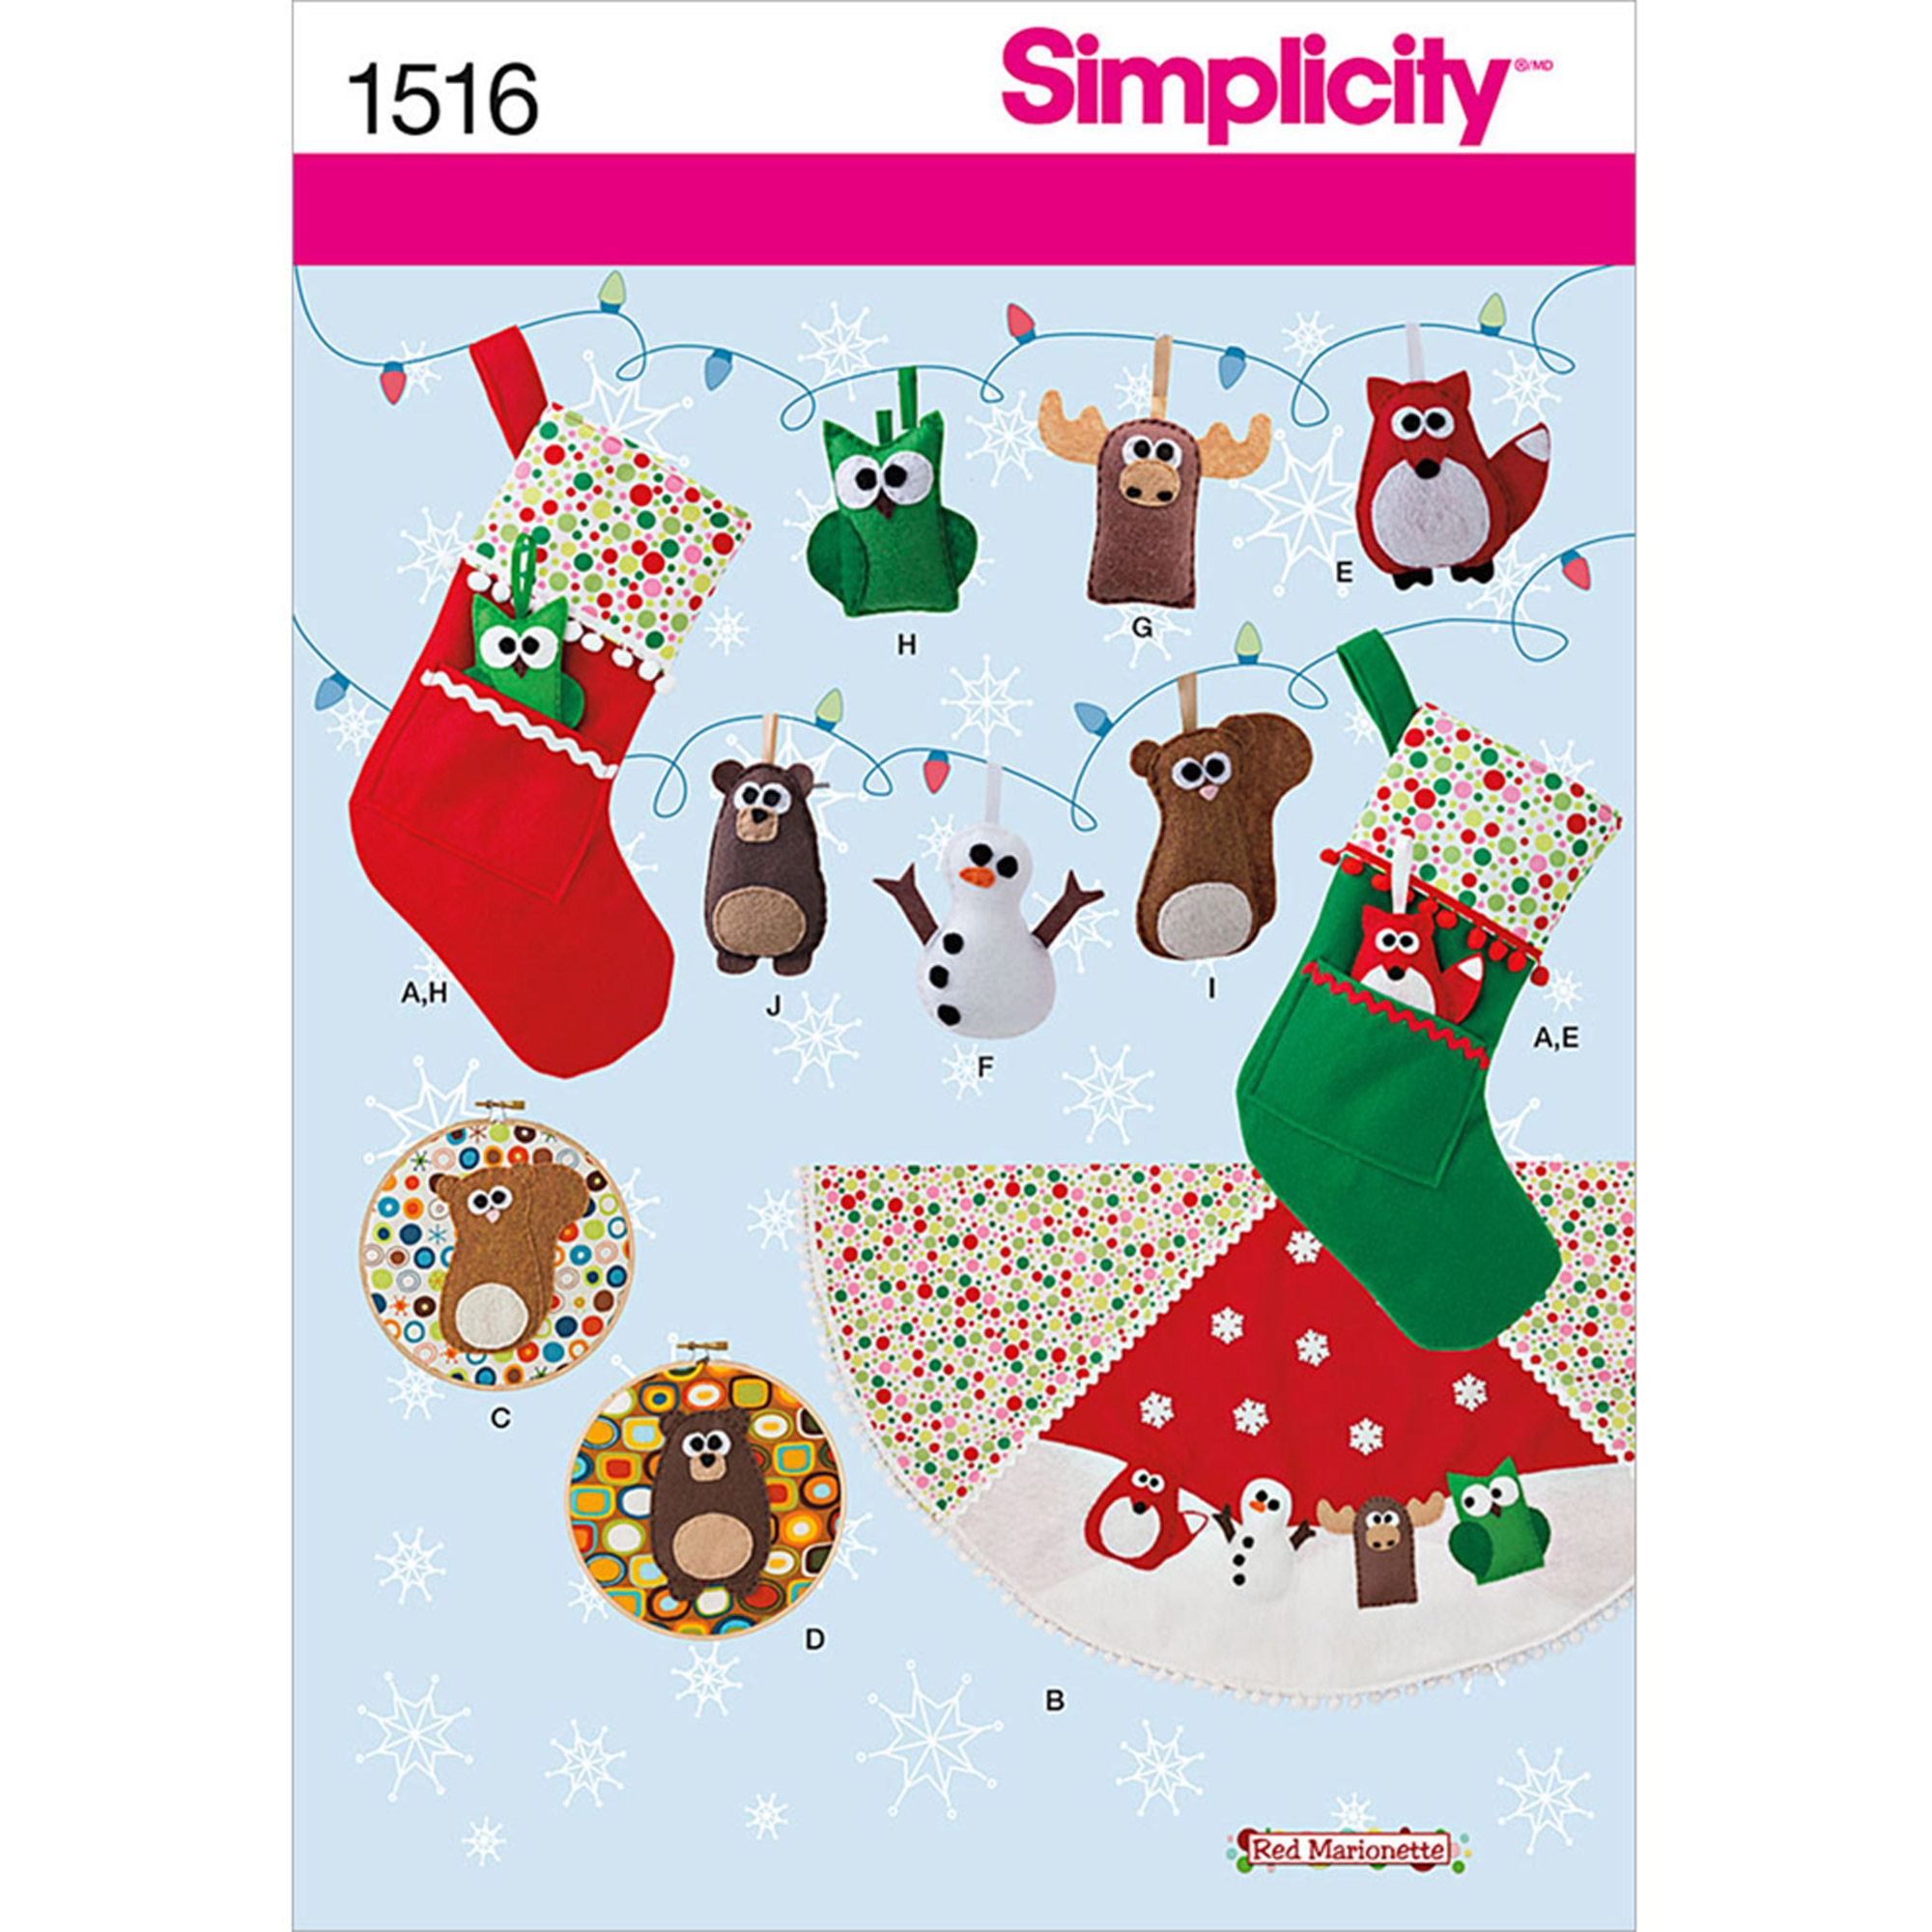 Simplicity Patterns Crafts Holiday, One Size